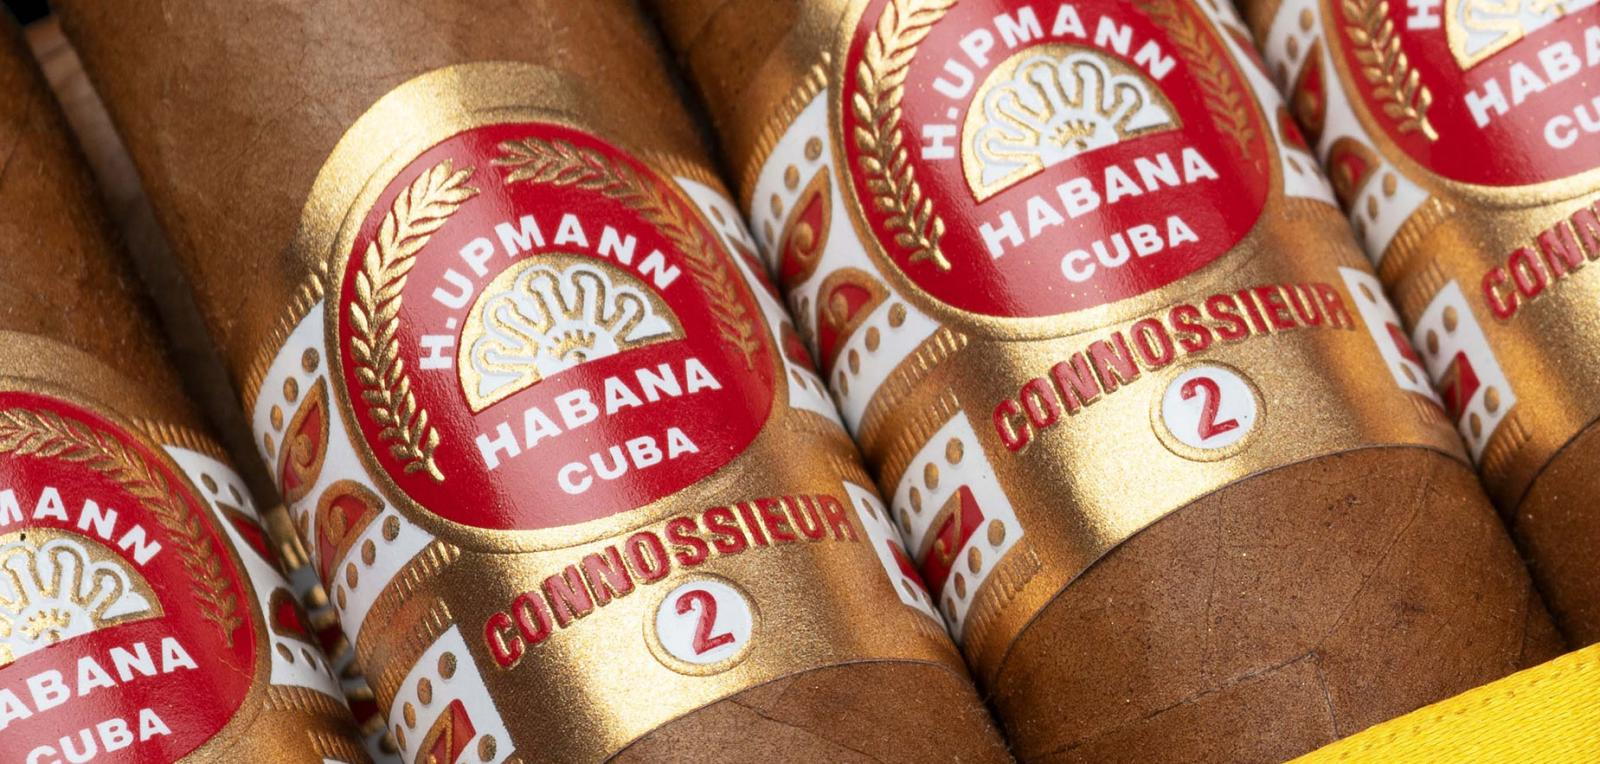 Habanos S.A. presents new H. Upmann Connoisseur No. 2 vitola